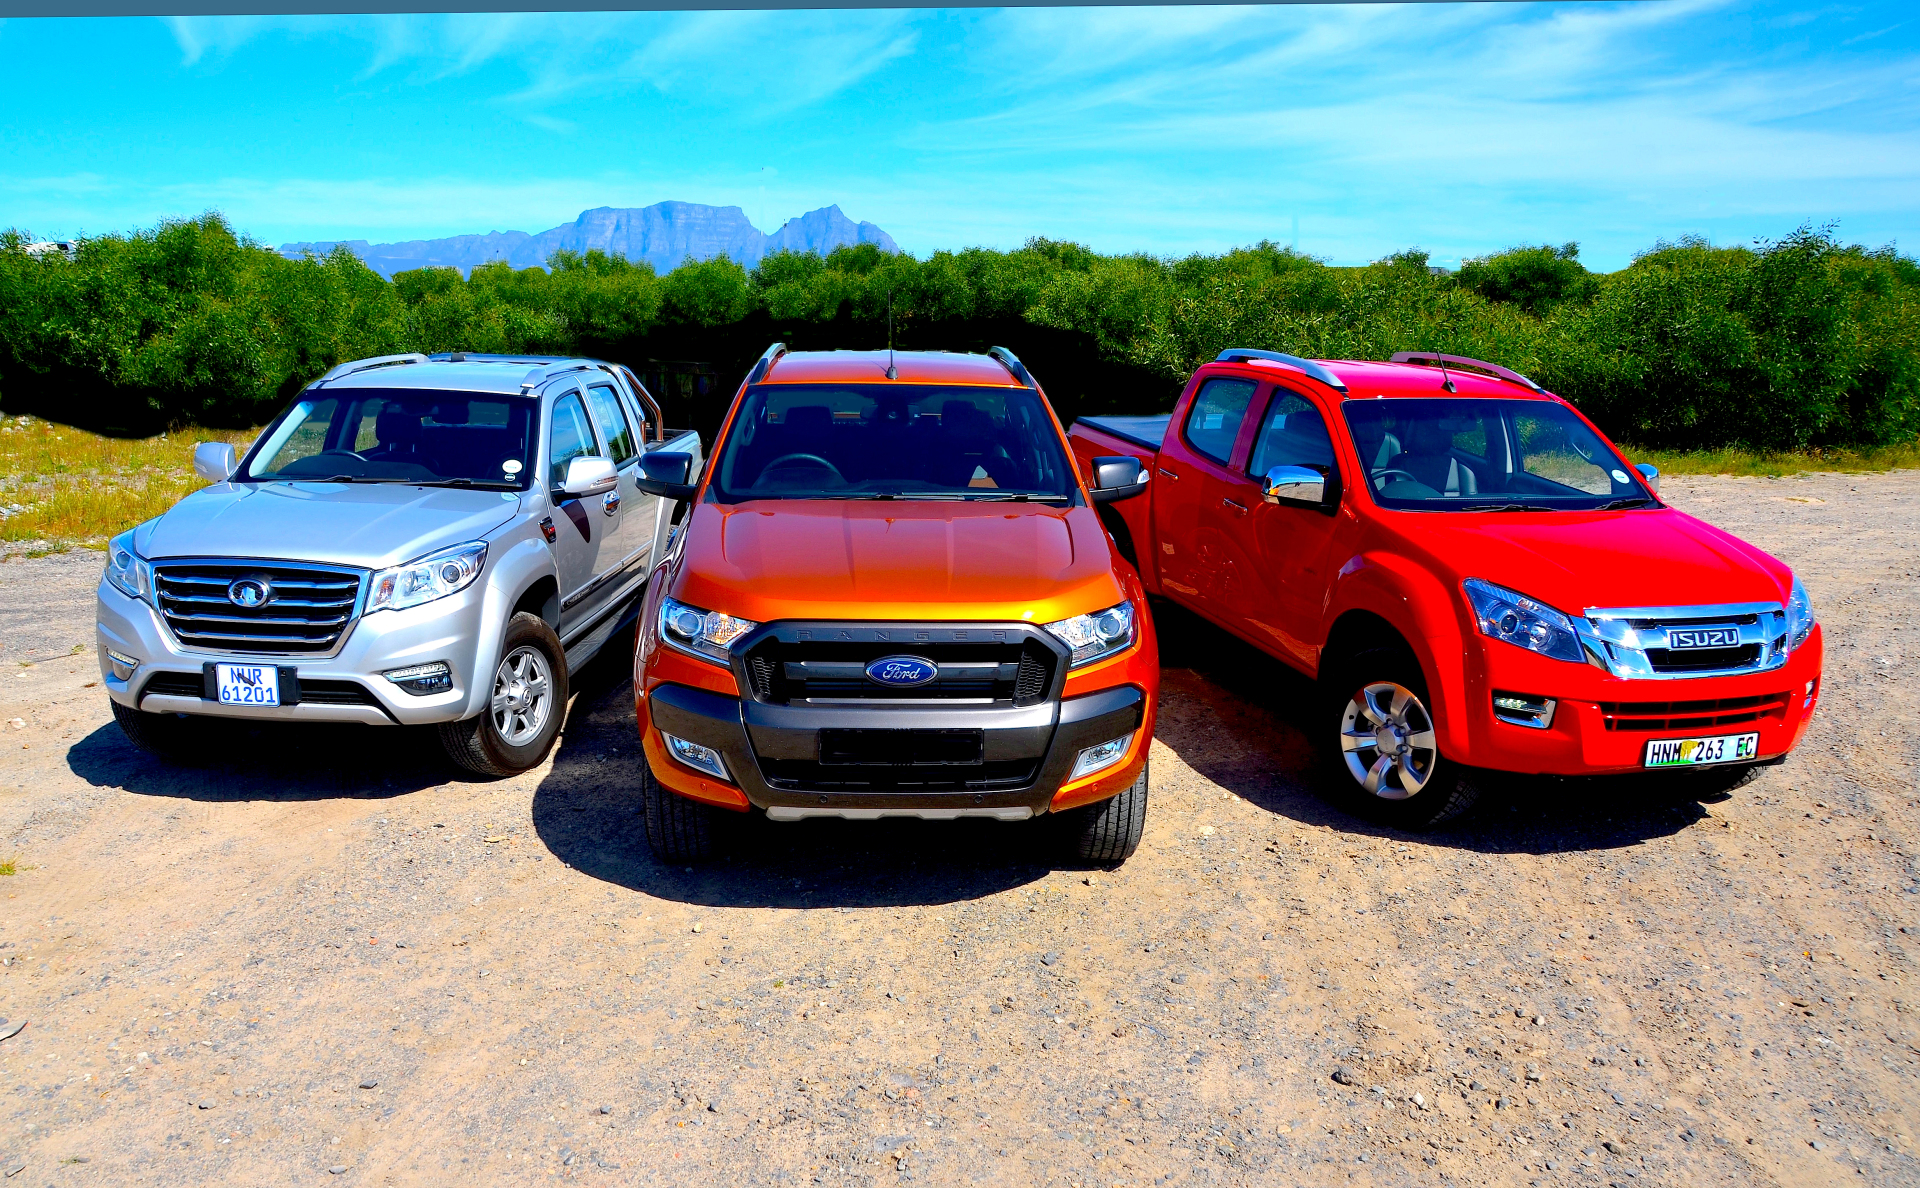 The bakkie world is set for a revolution - Image: Michele Lupini